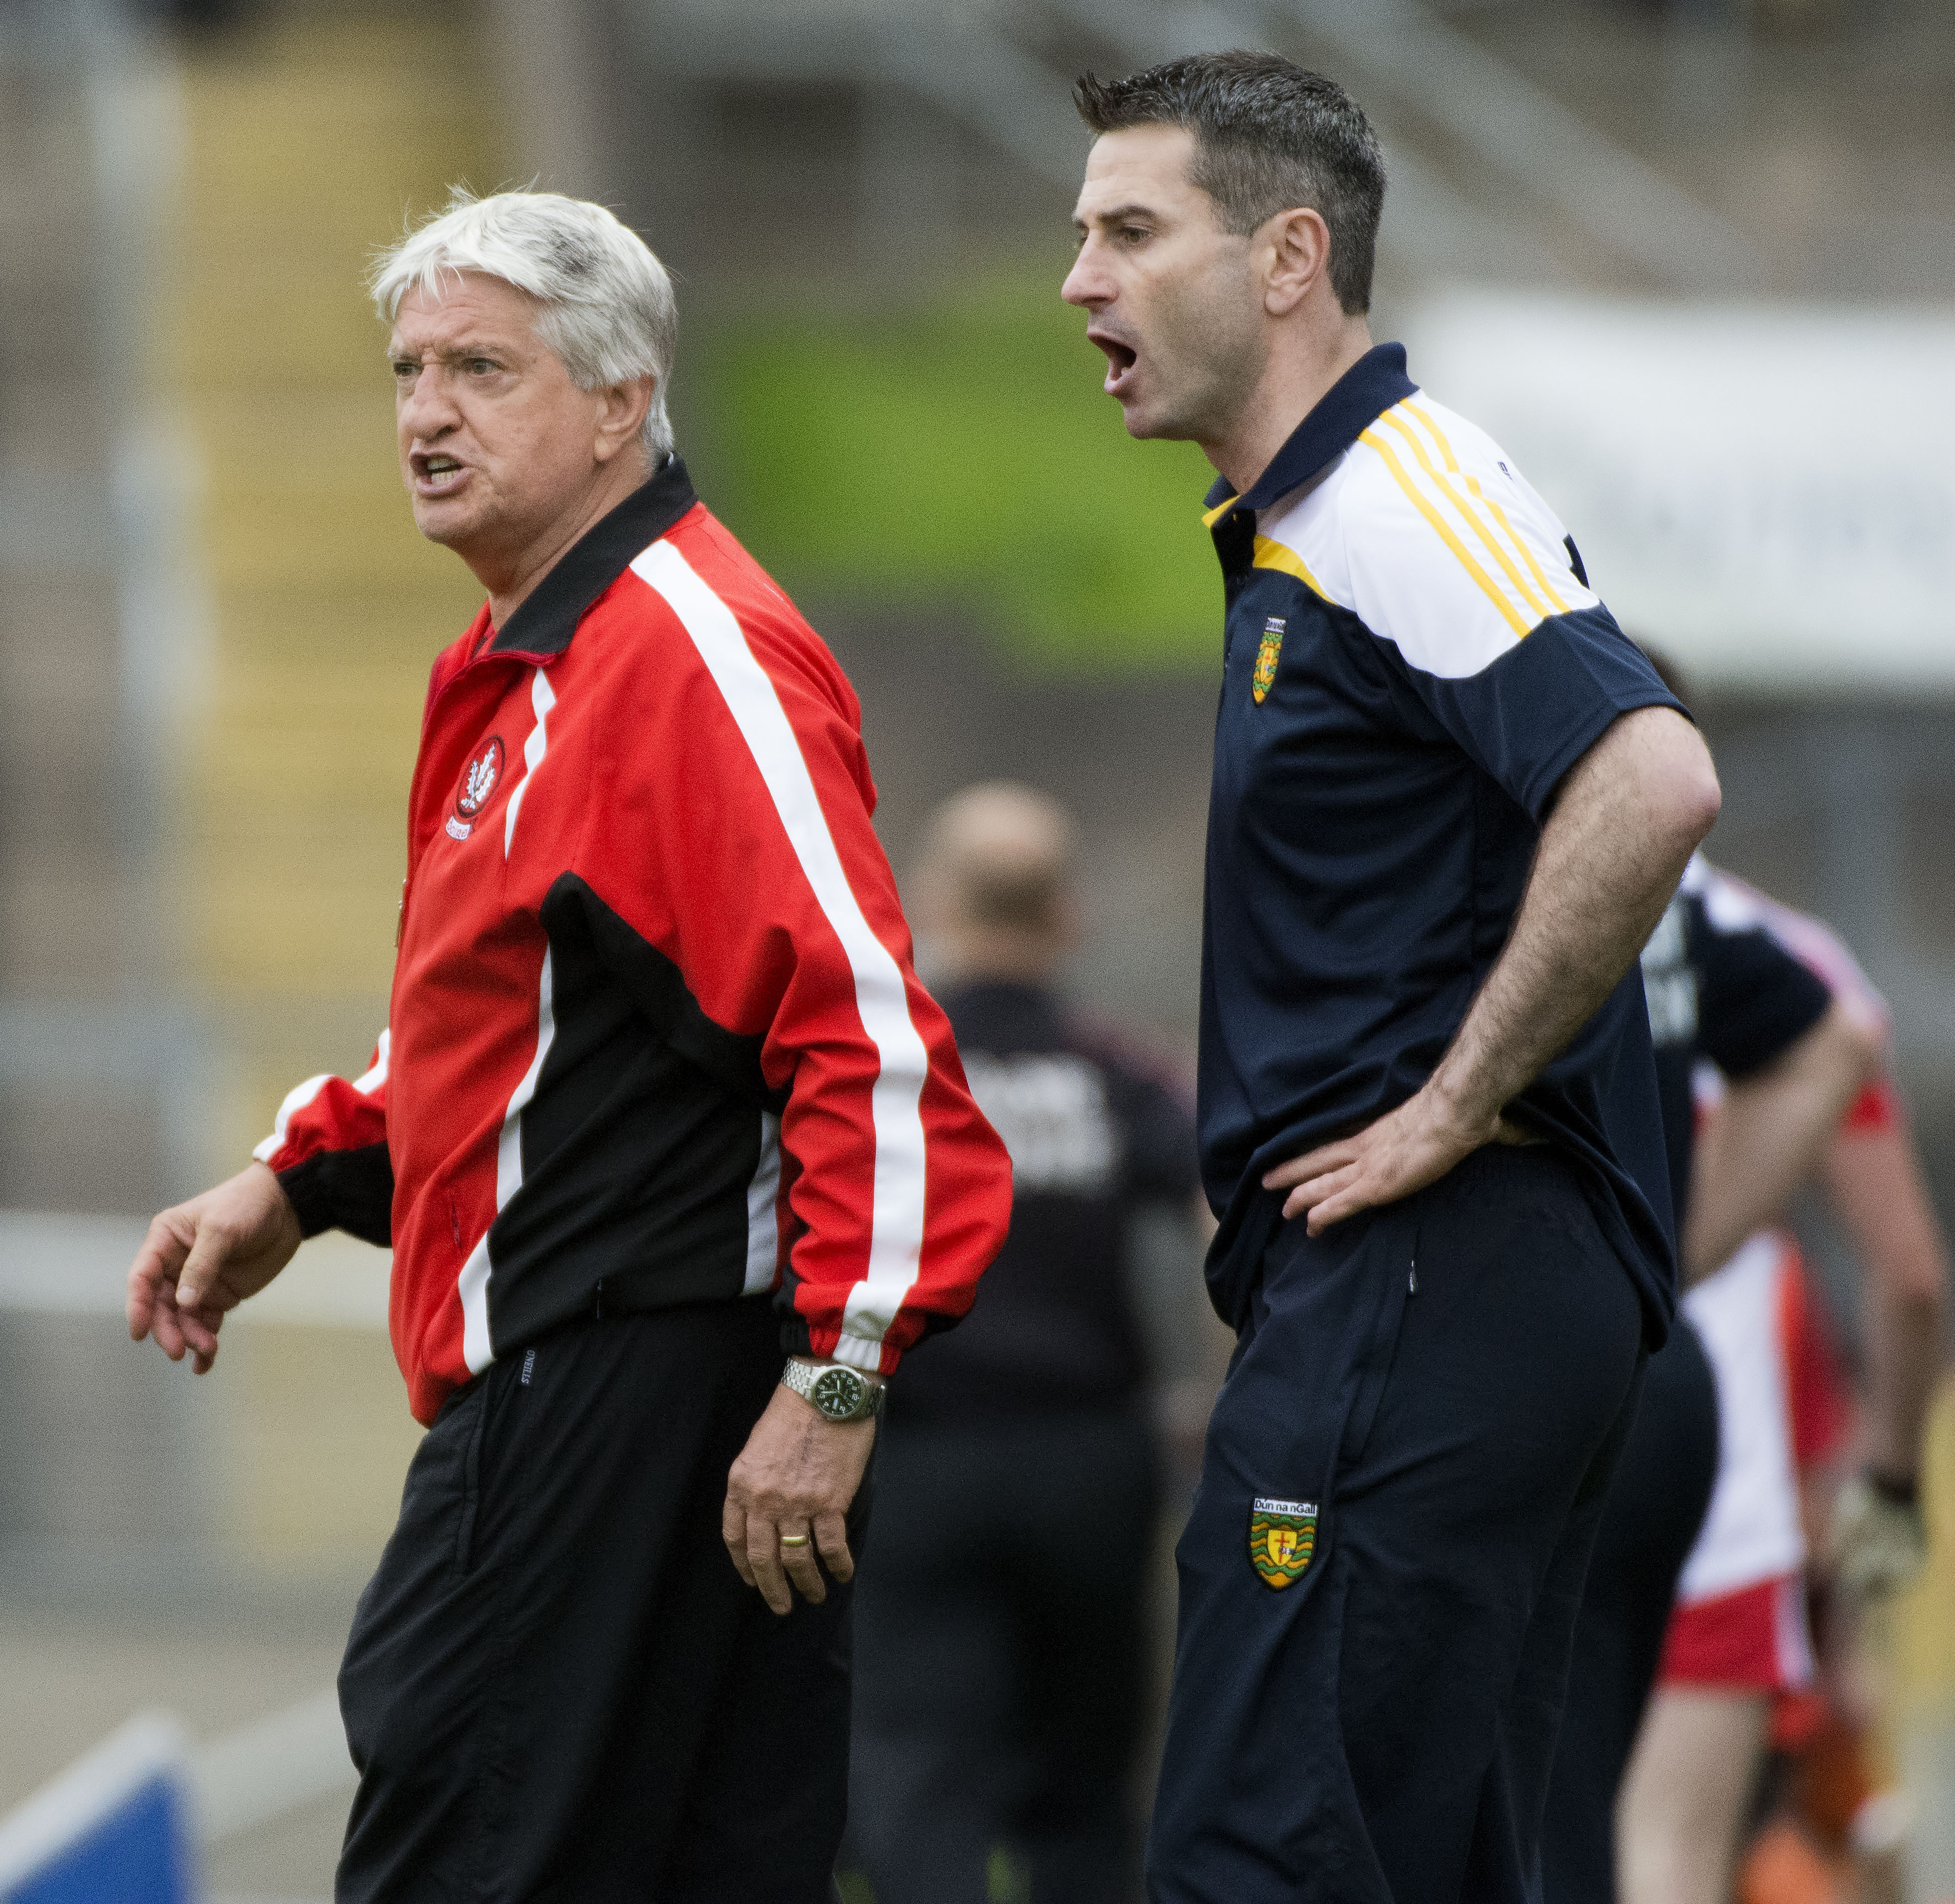 Donegal v Derry reviewed in latest podcast